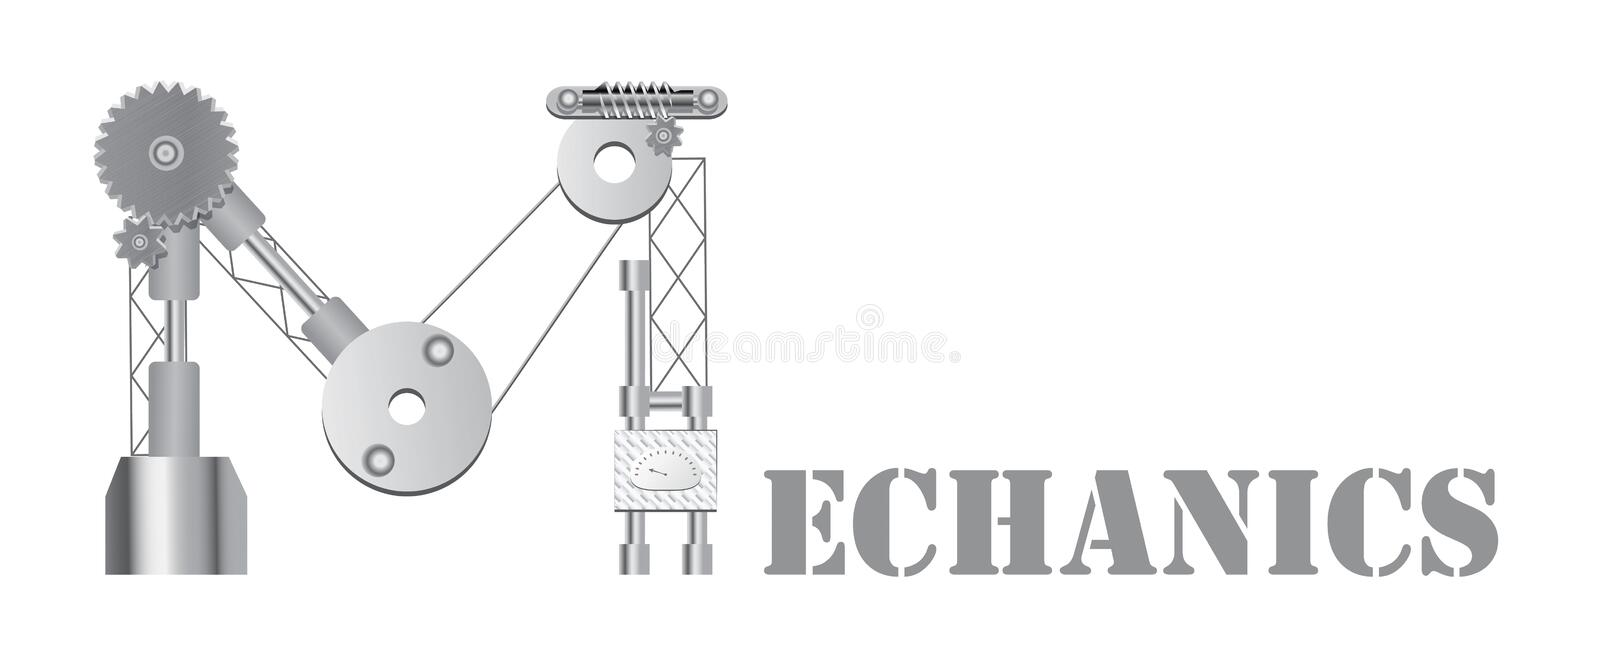 Mechanics logo royalty free illustration